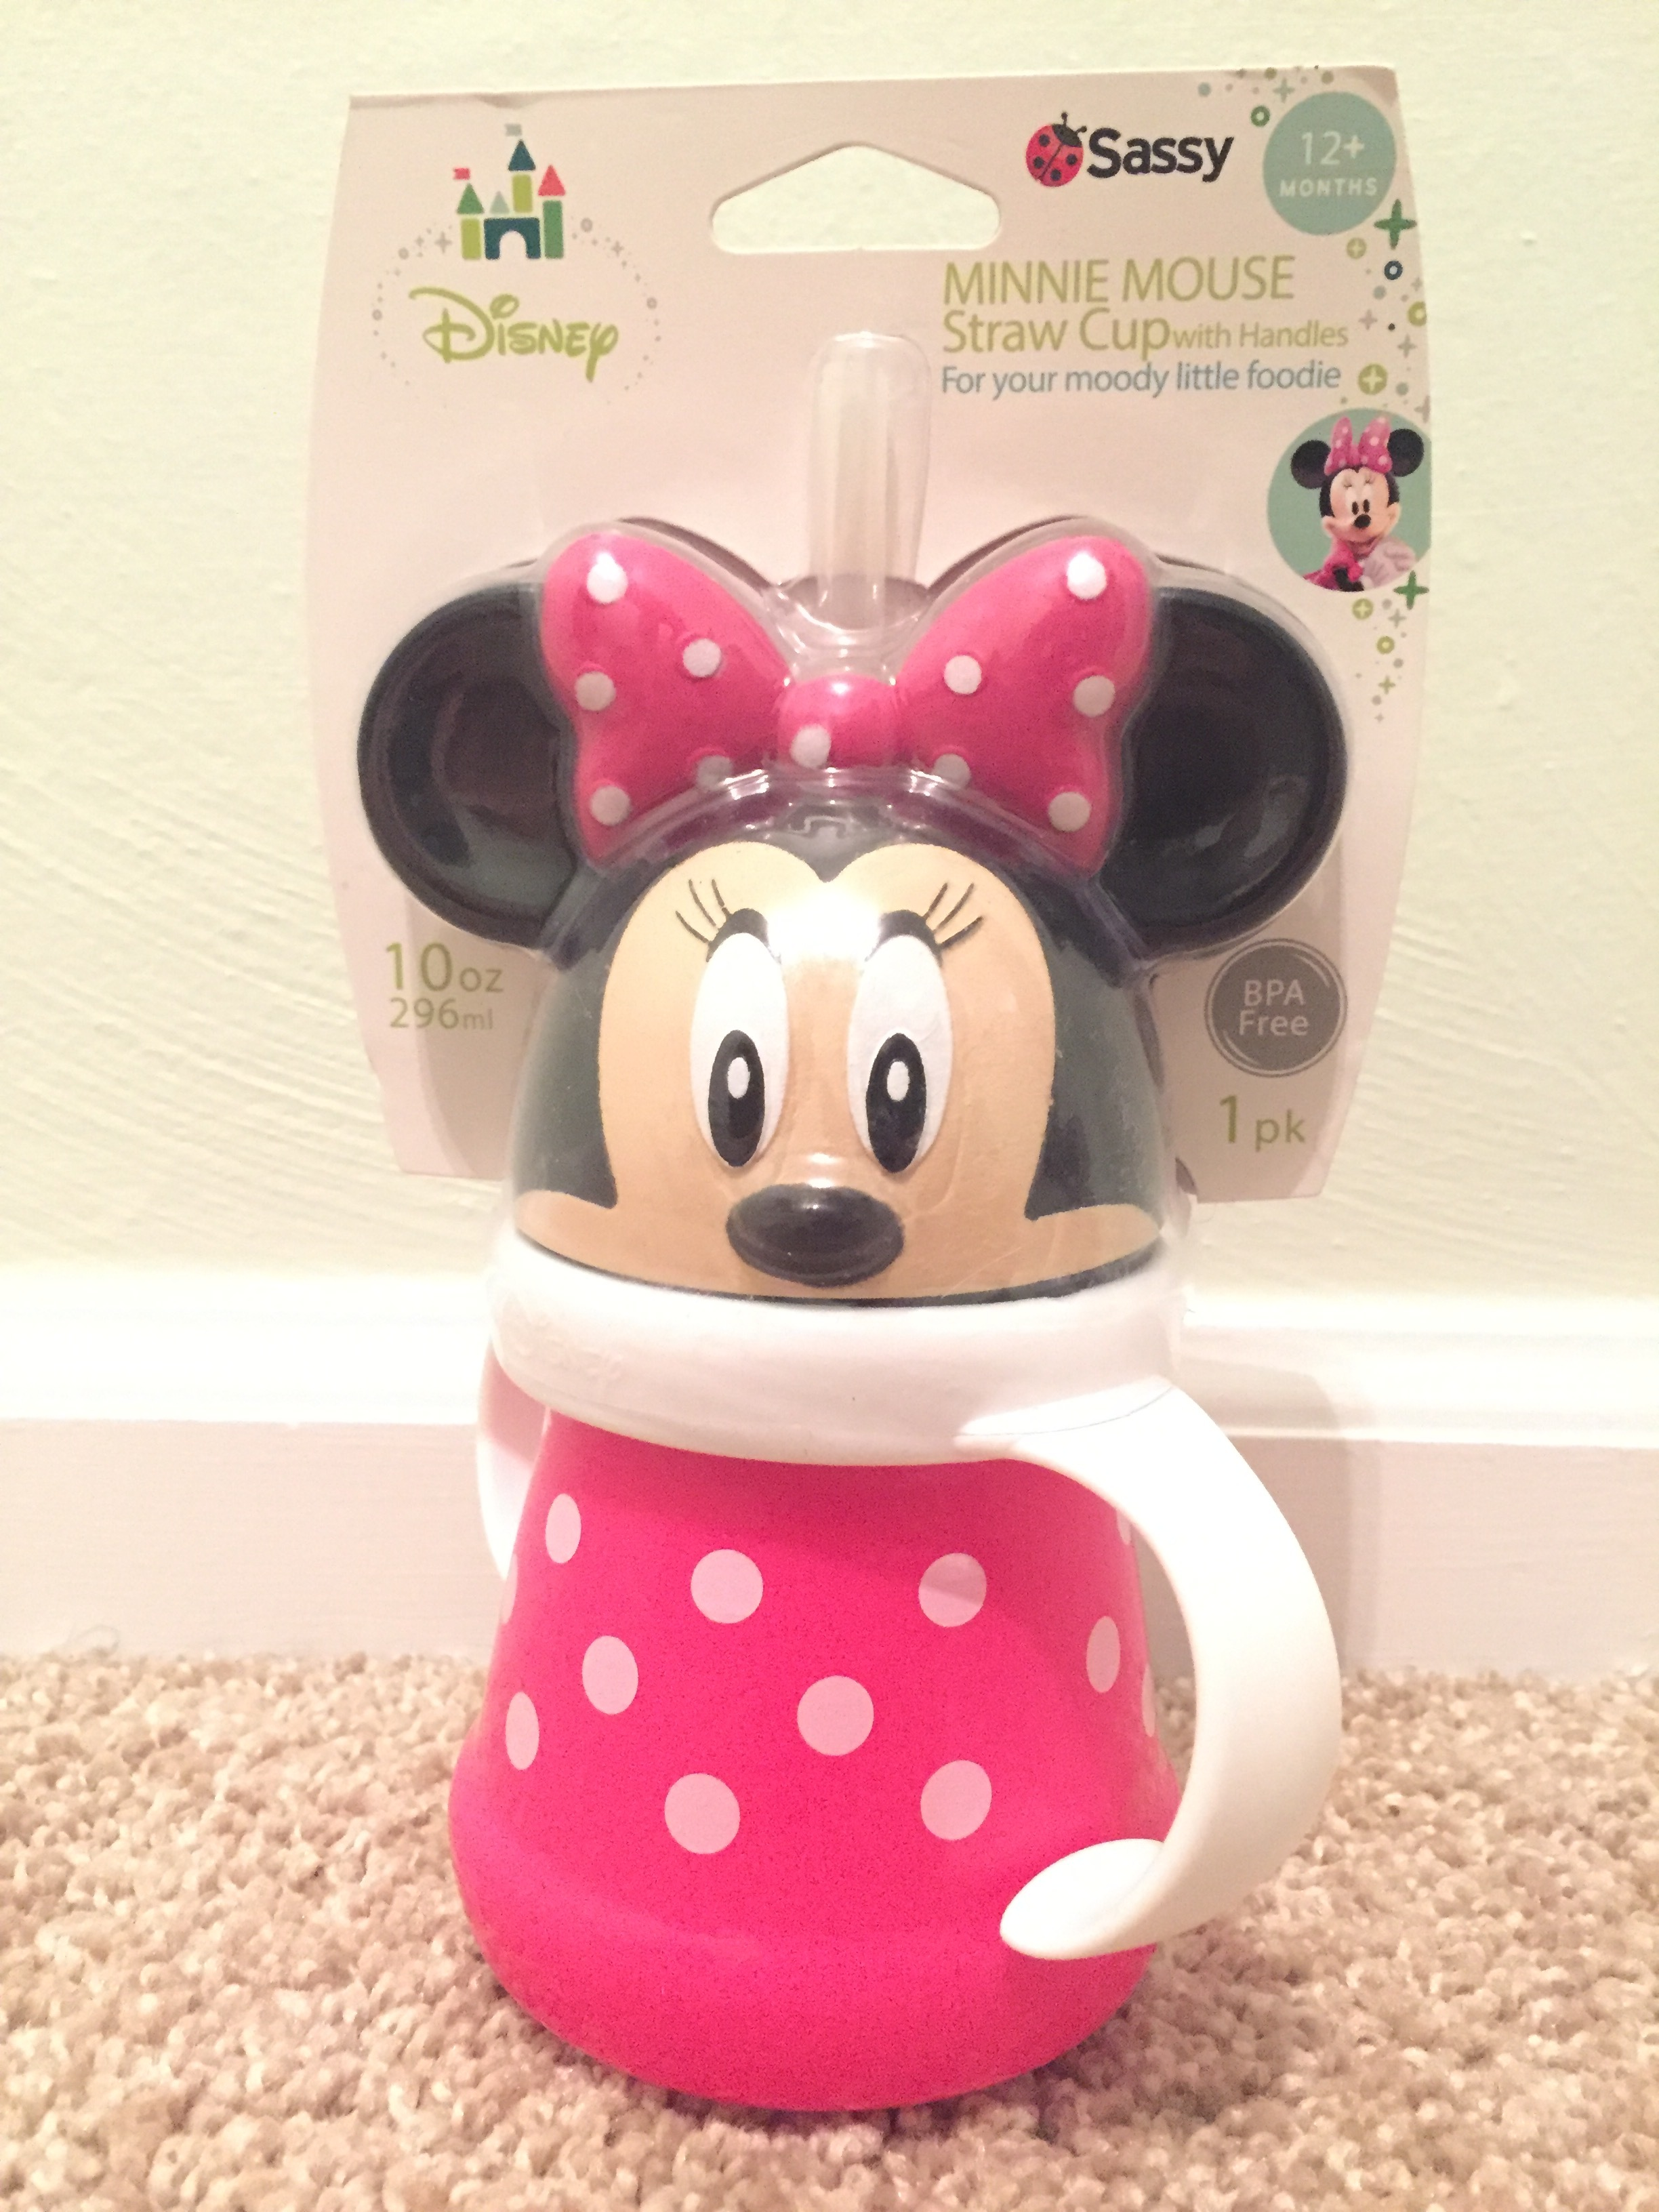 My friend, Angela, saw my post last week. I mentioned this sippy cup and she was sweet enough to pick it up for me (well, for baby)! Oh, the power of social media! ;)